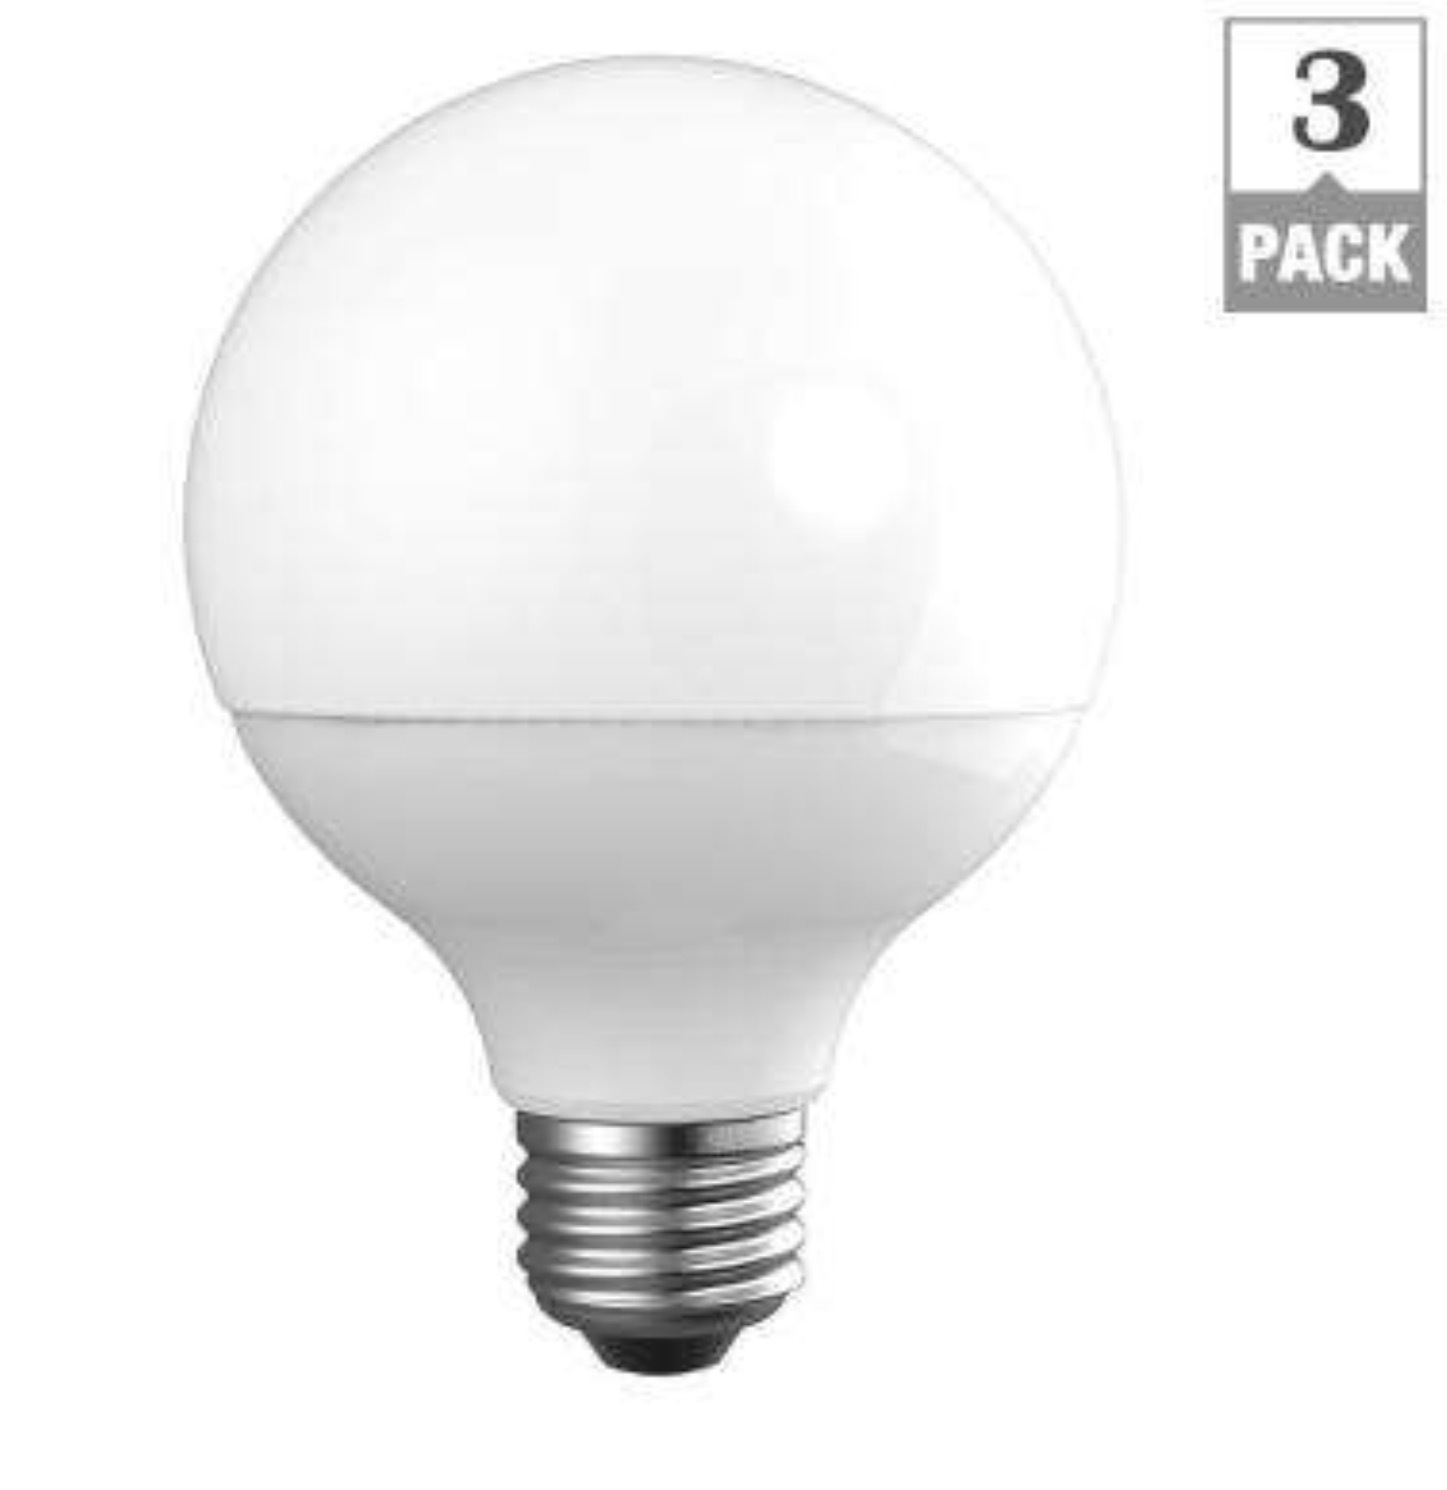 Newhouse Lighting 40w Equivalent Incandescent G25 Dimmable: EcoSmart 40W Equivalent Daylight G25 Frosted Globe